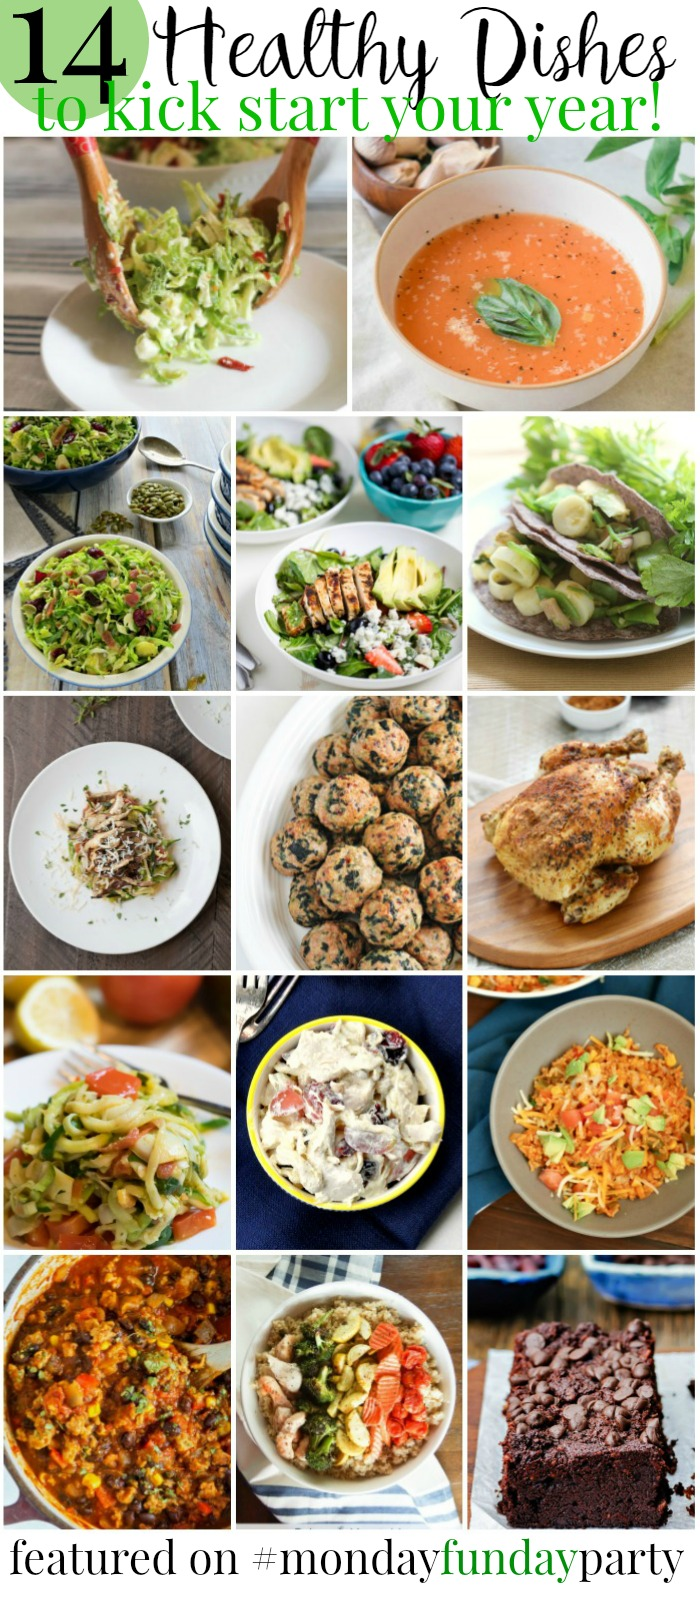 14 Healthy Dishes